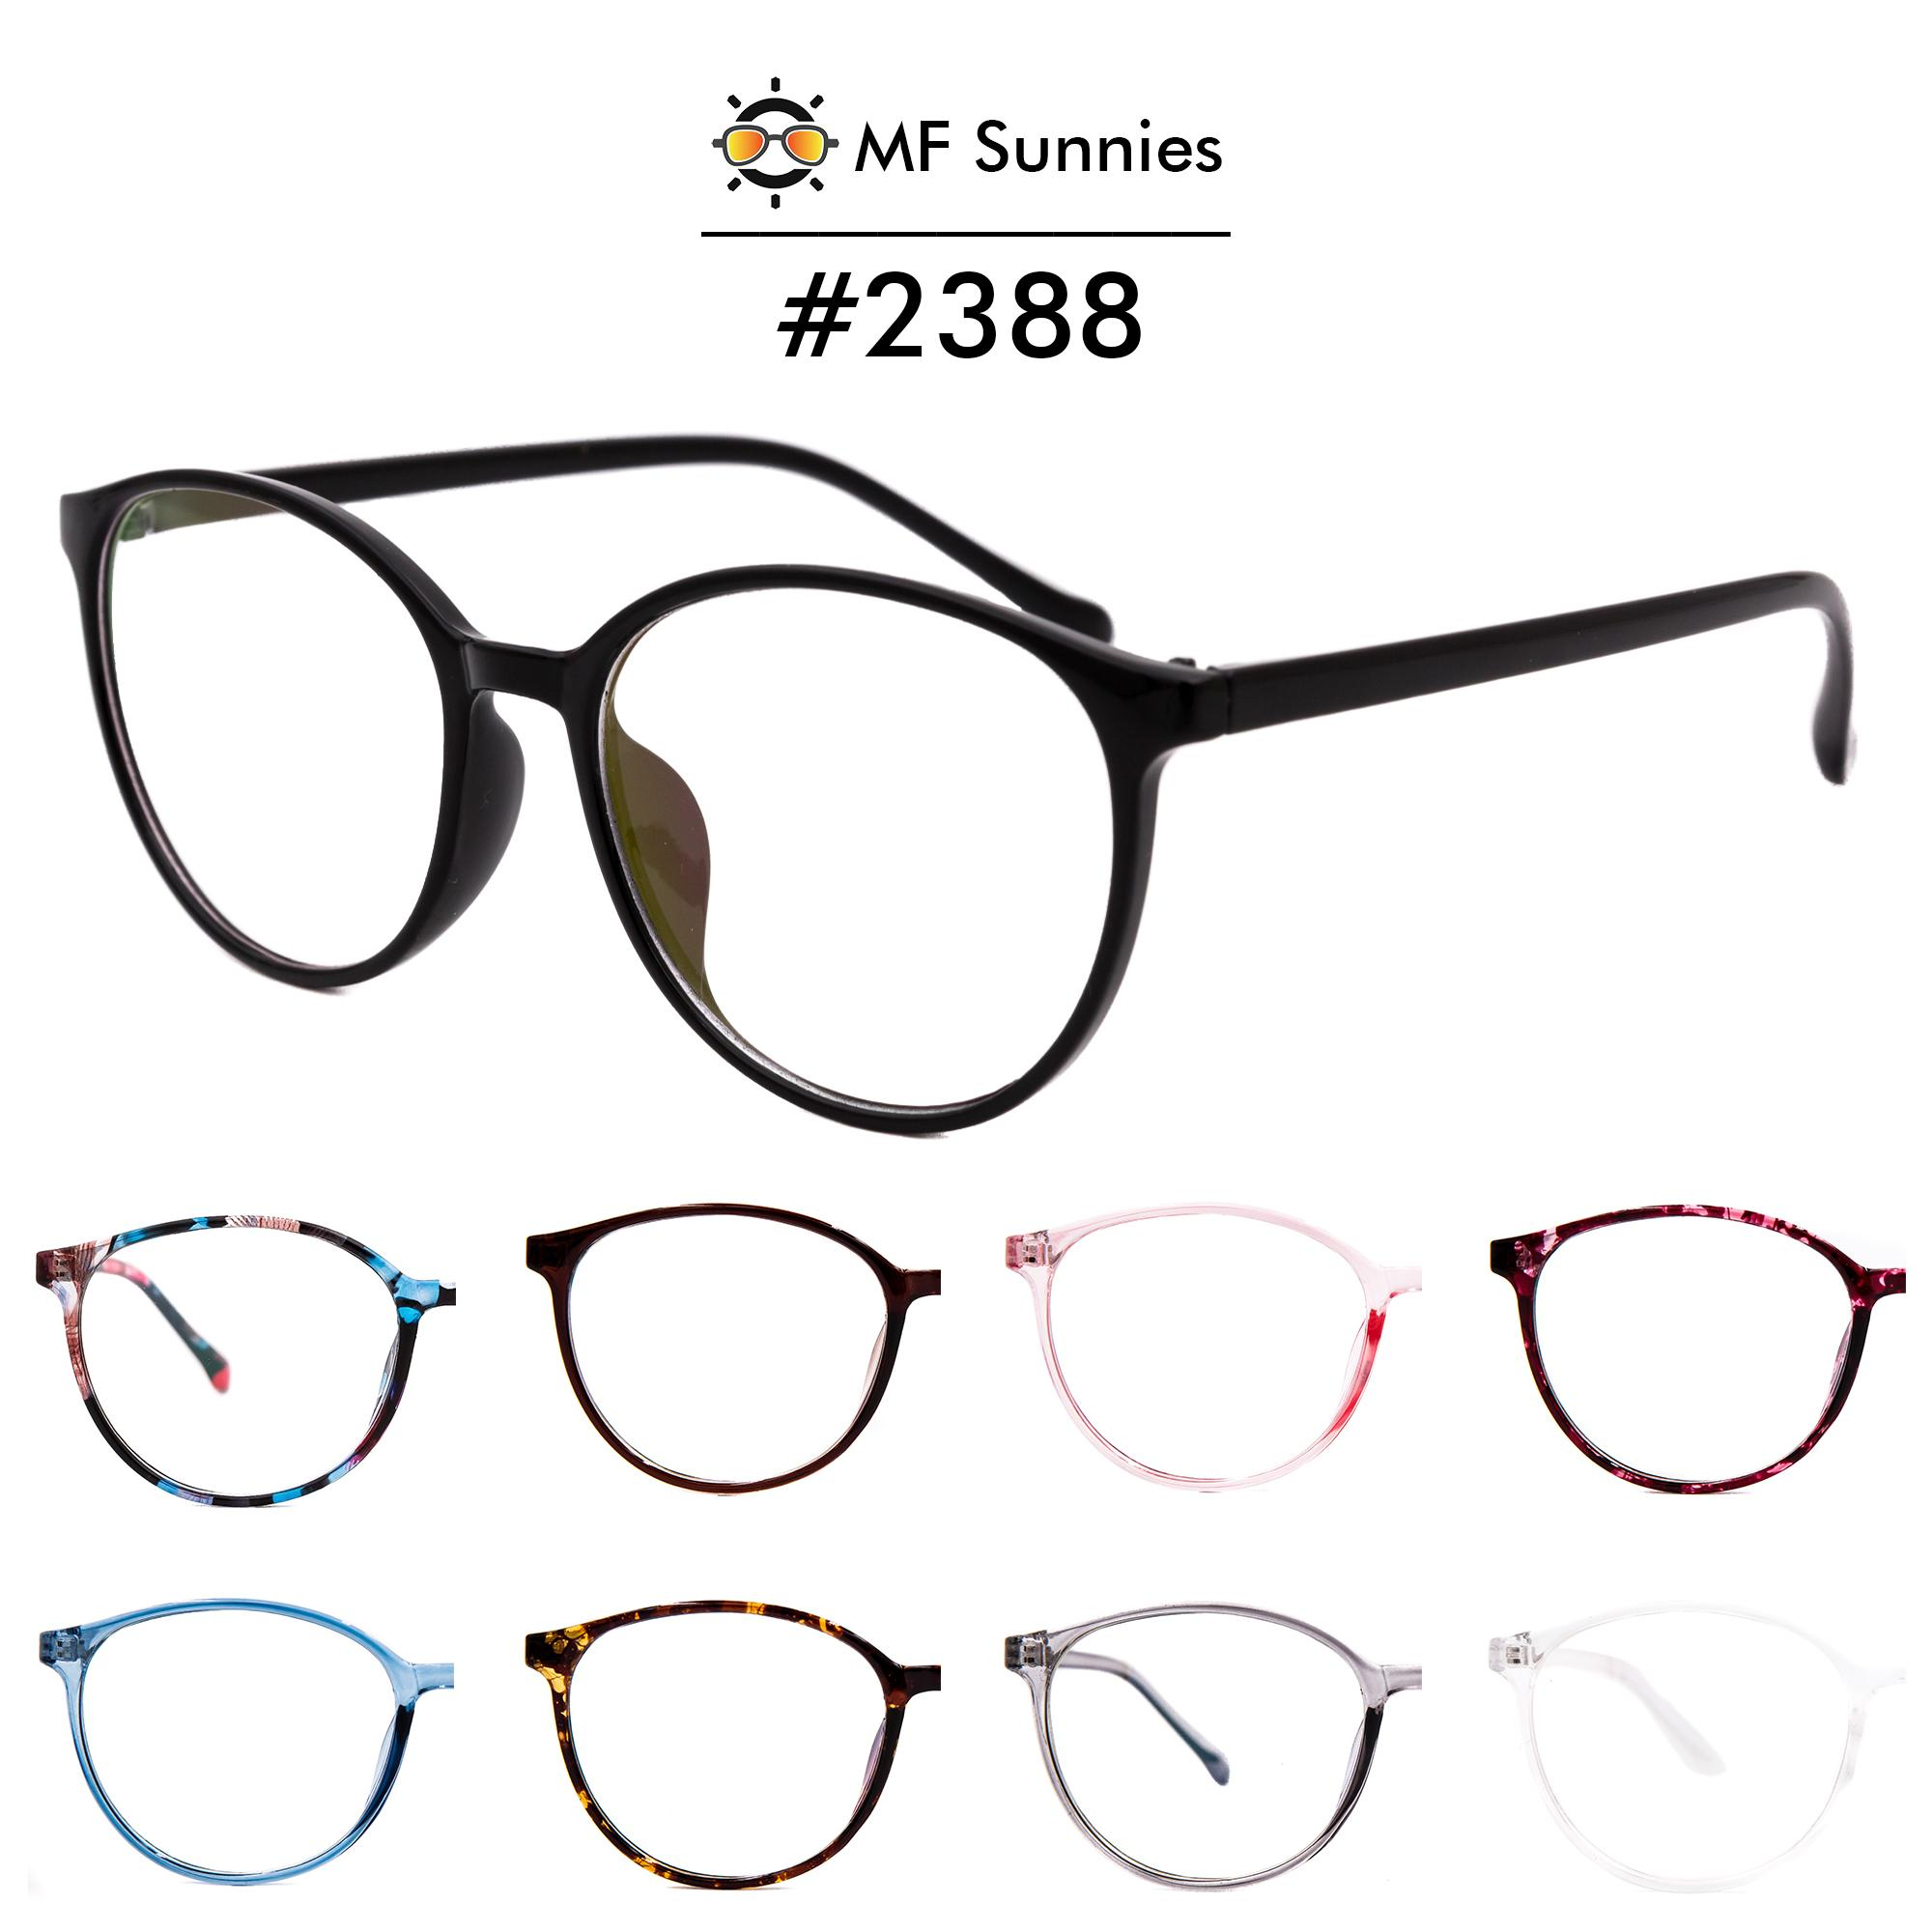 e2a67a3bfe MFSunnies Computer Anti-Radiation Blue light Unisex eyewear Premium Acetate  optical frame Metal hinges